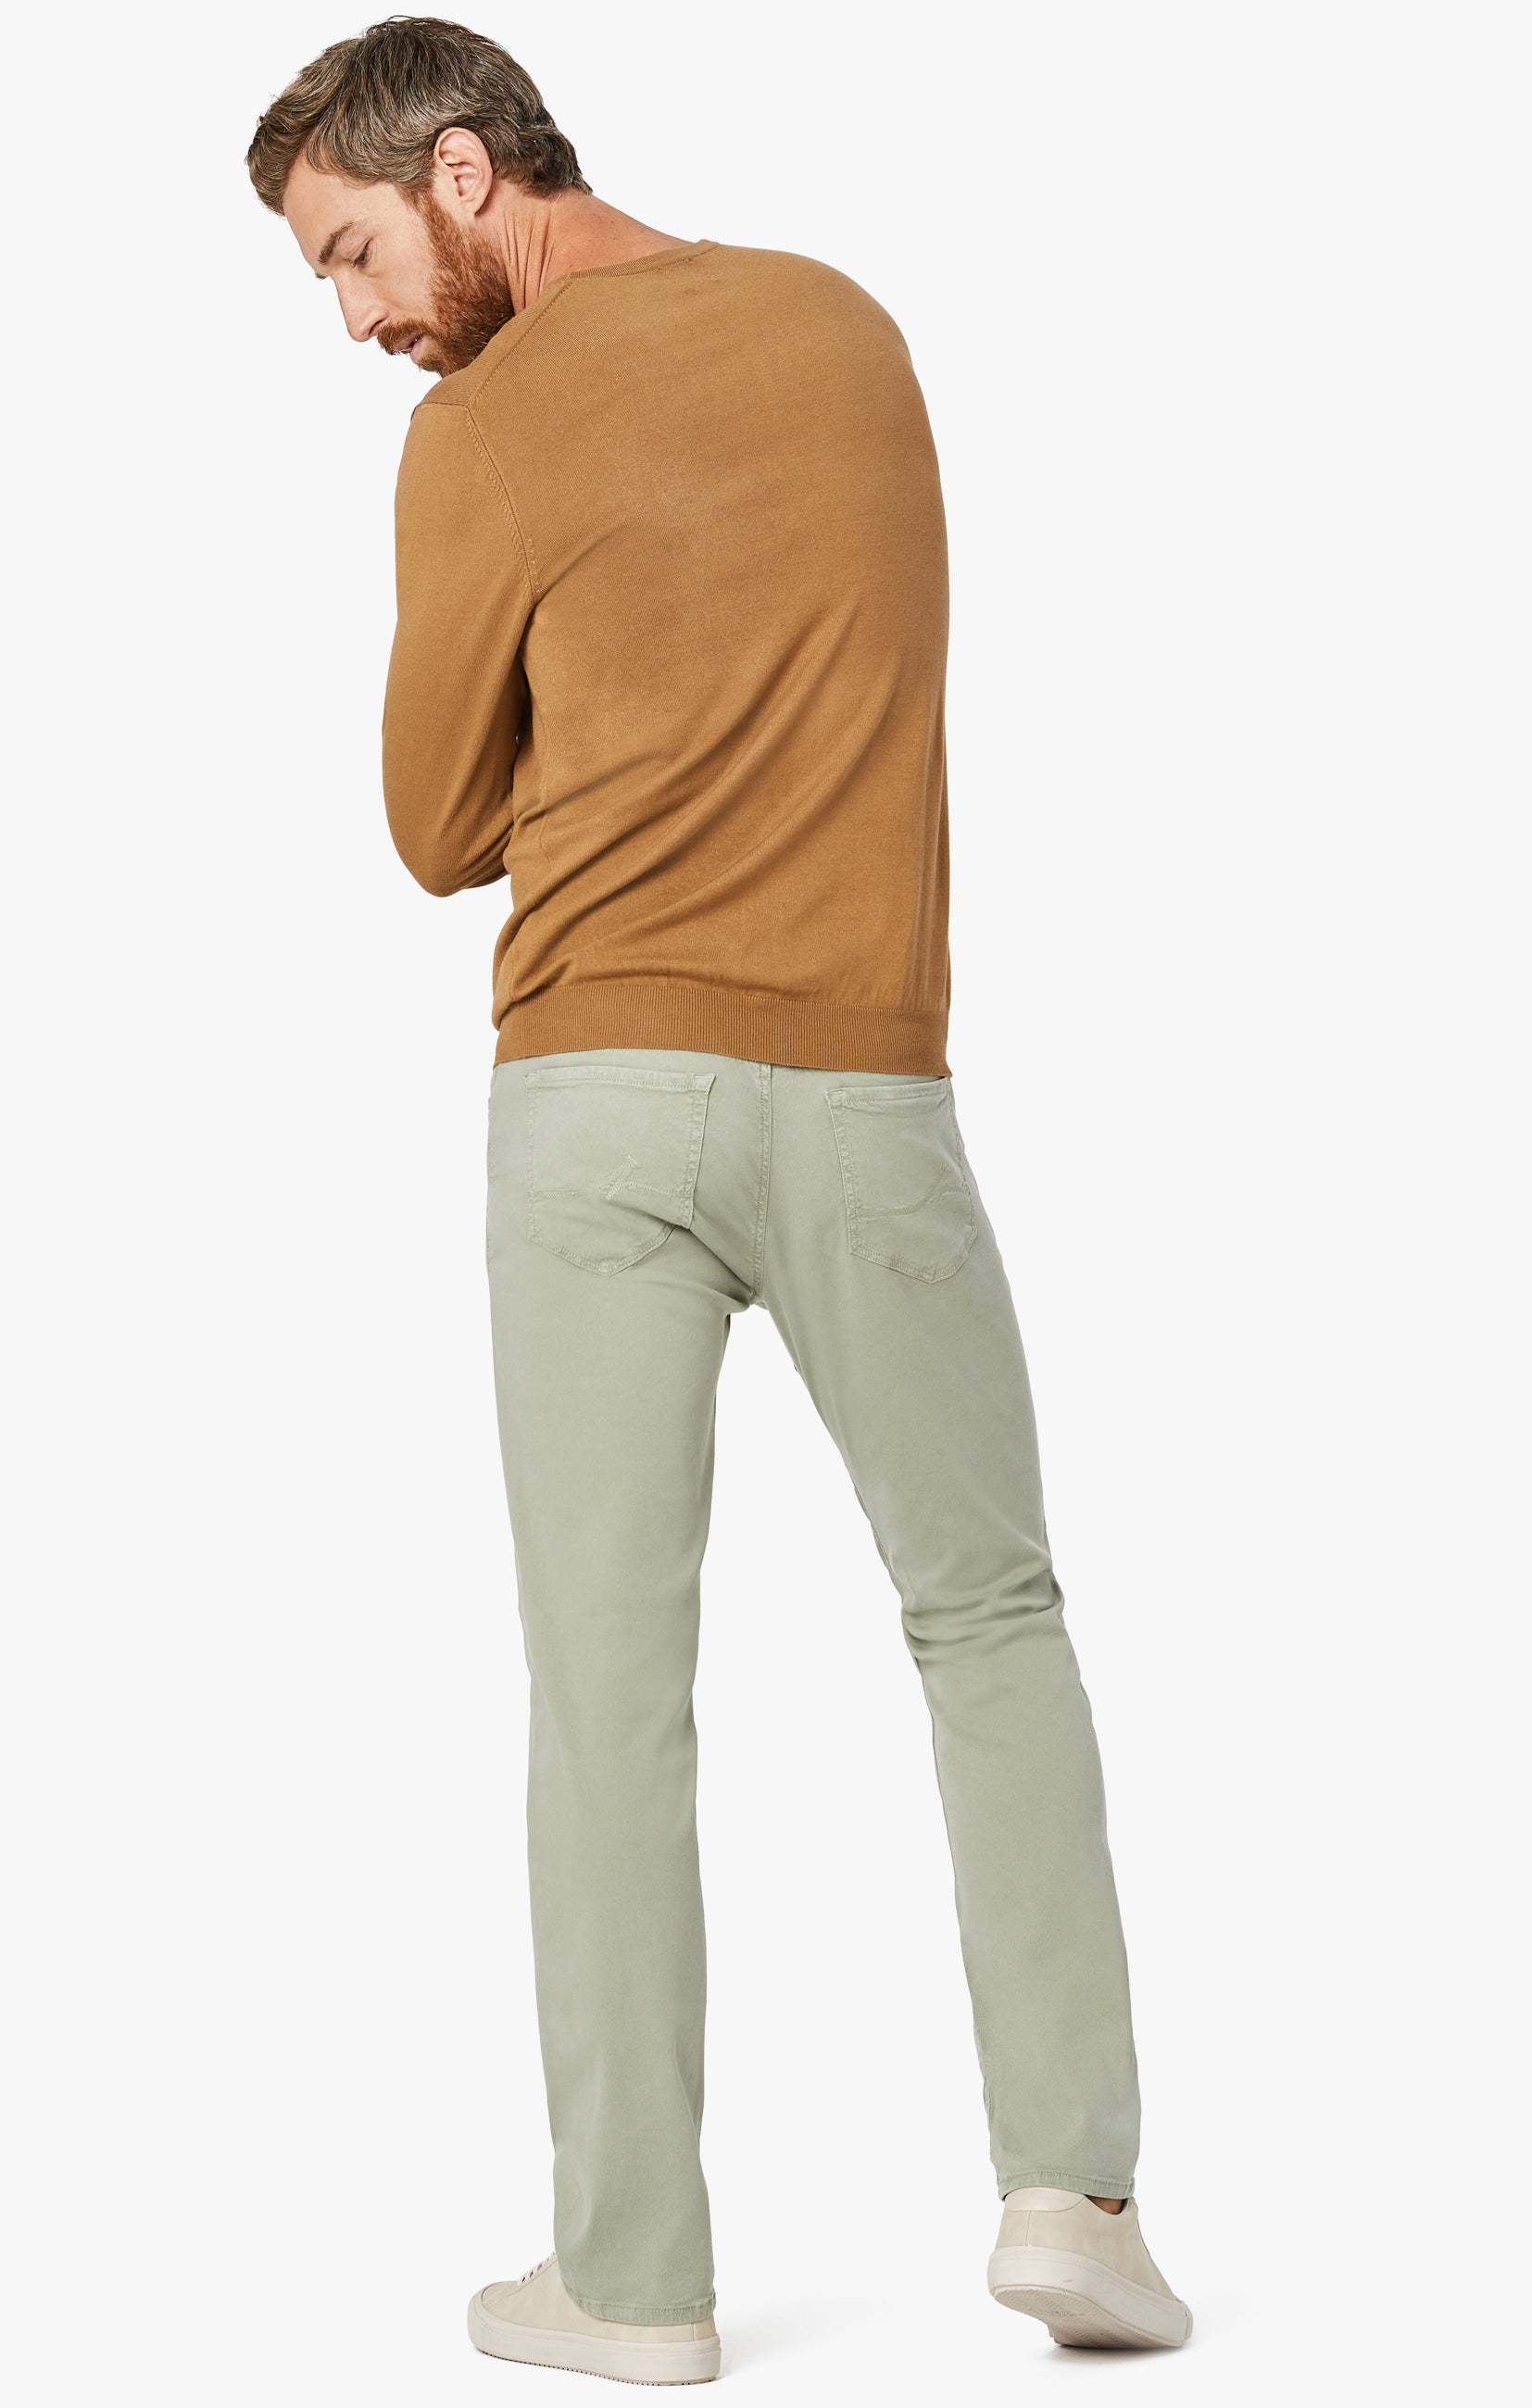 Courage Straight Leg Pants in Sage Soft Touch Image 6